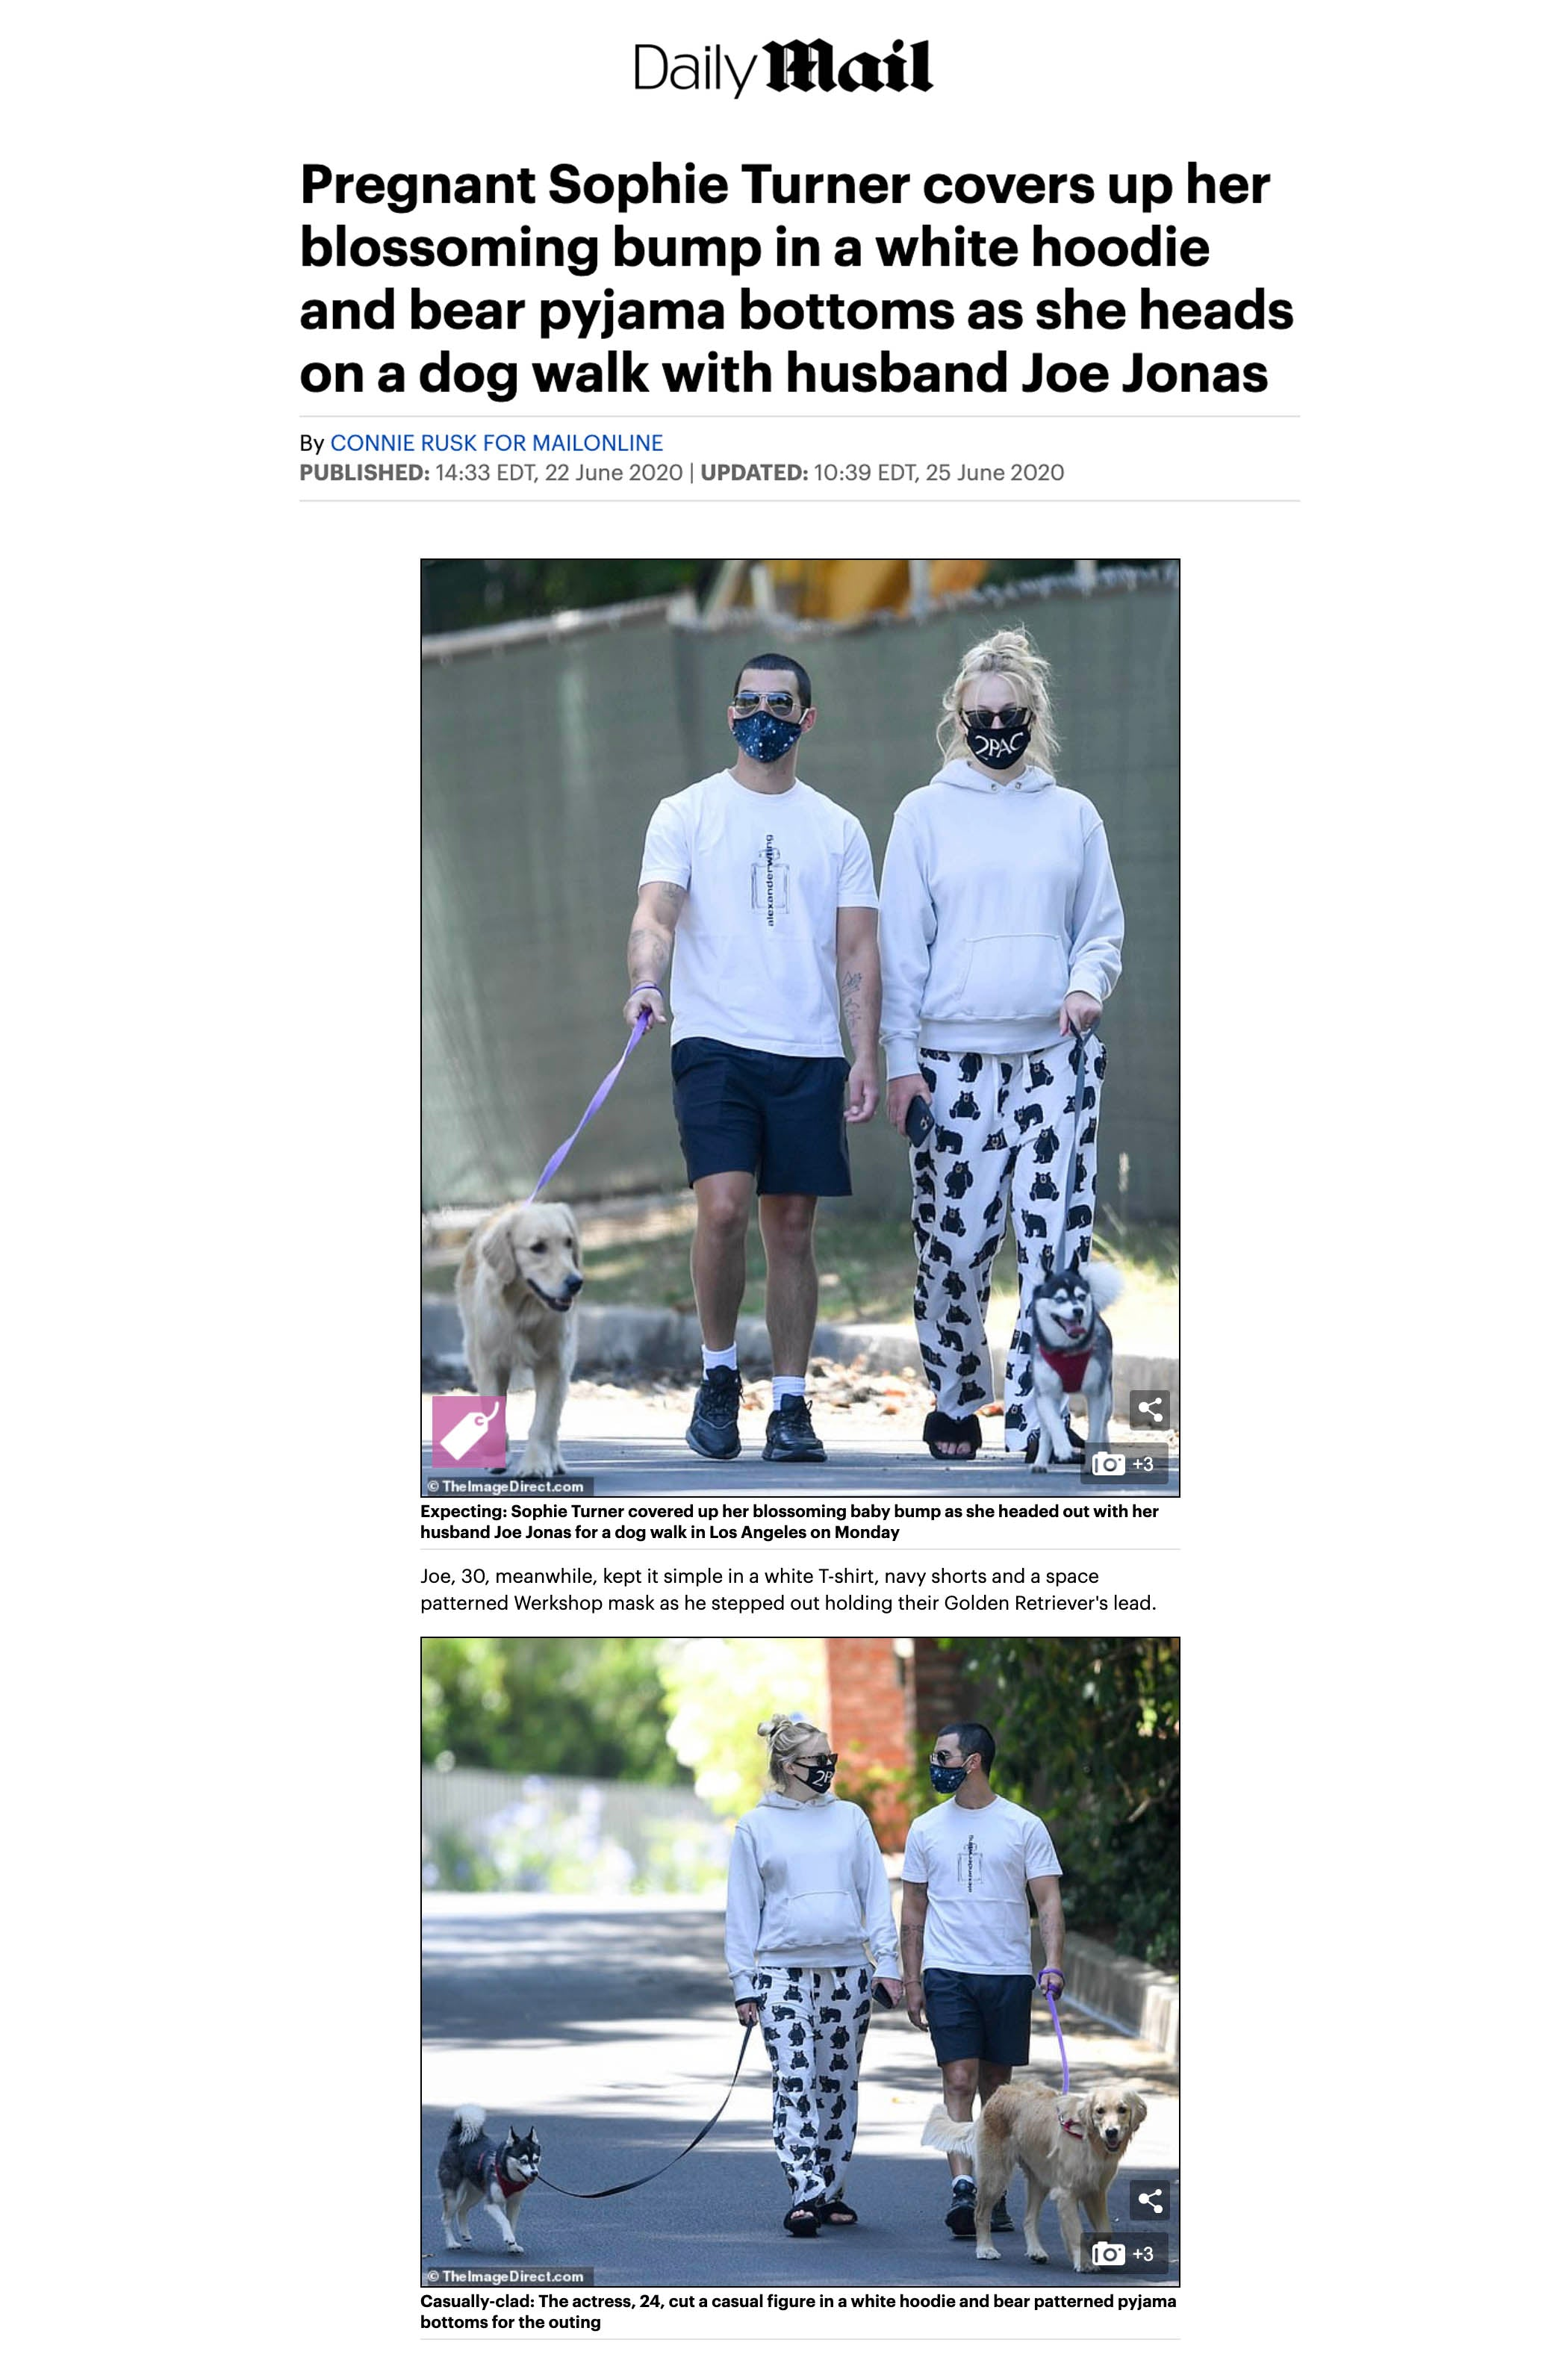 Joe Jonas featured wearing WERKSHOP Starry Night Mask in DailyMail